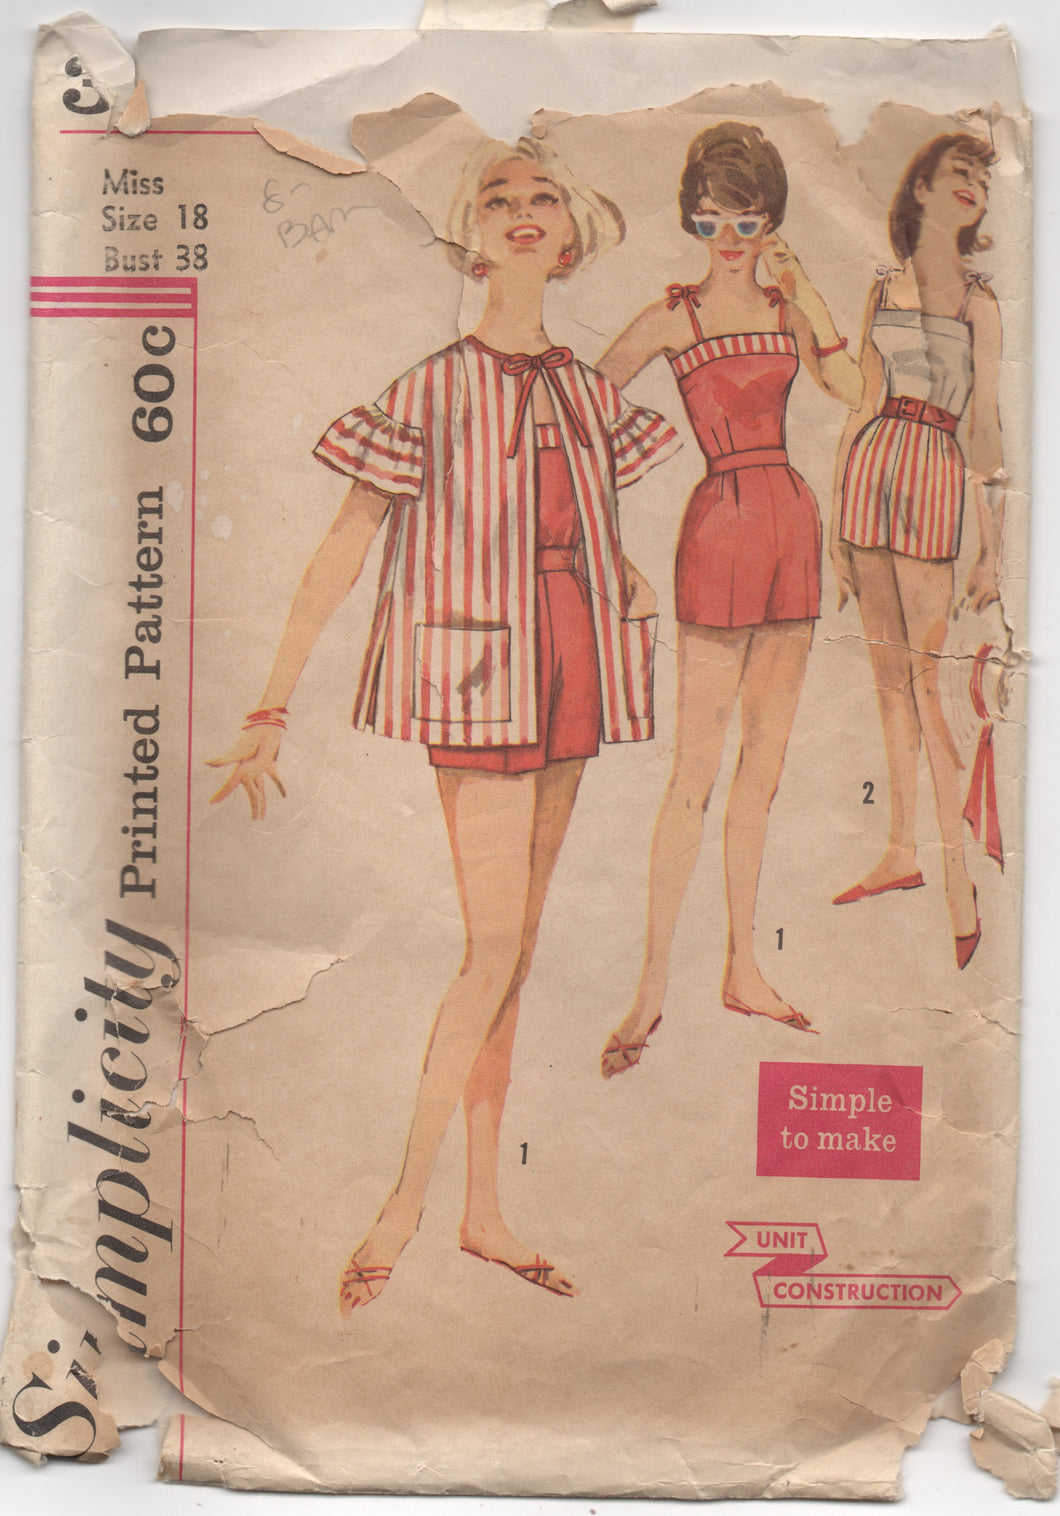 1960's Simplicity Summer Outfit, Top with Tie straps, Shorts, and Cover Up - Bust 38